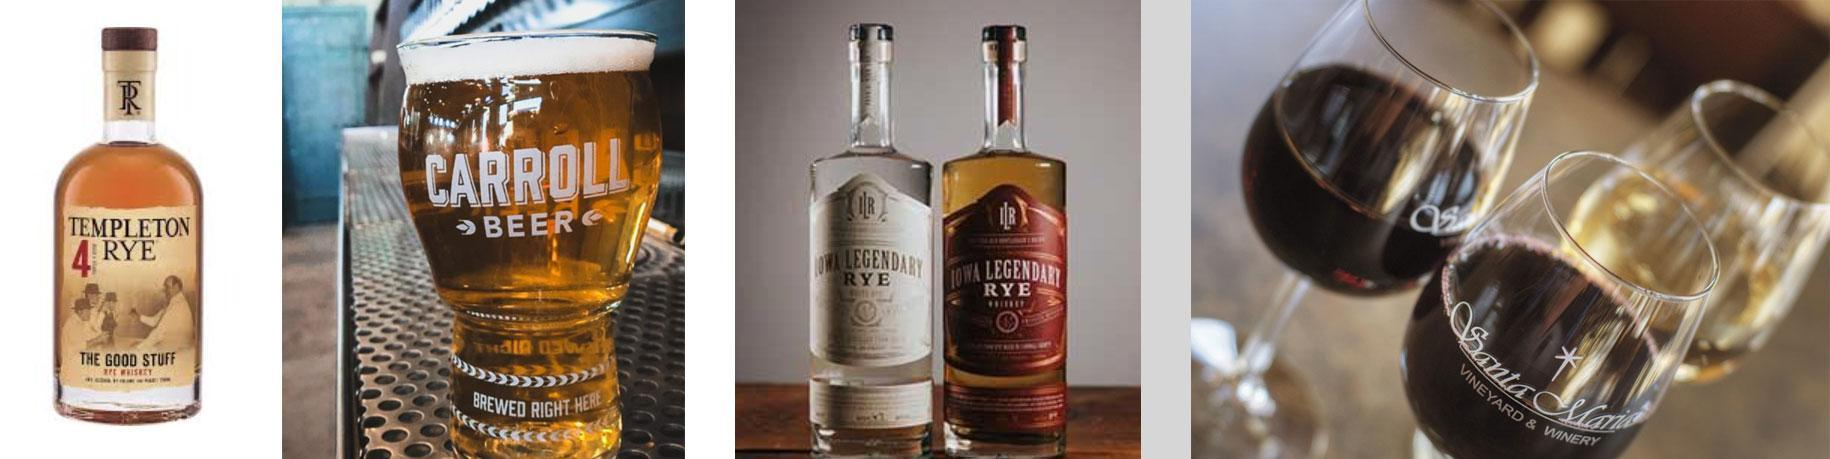 Alcohology Tour Launched in Carroll County Main Photo